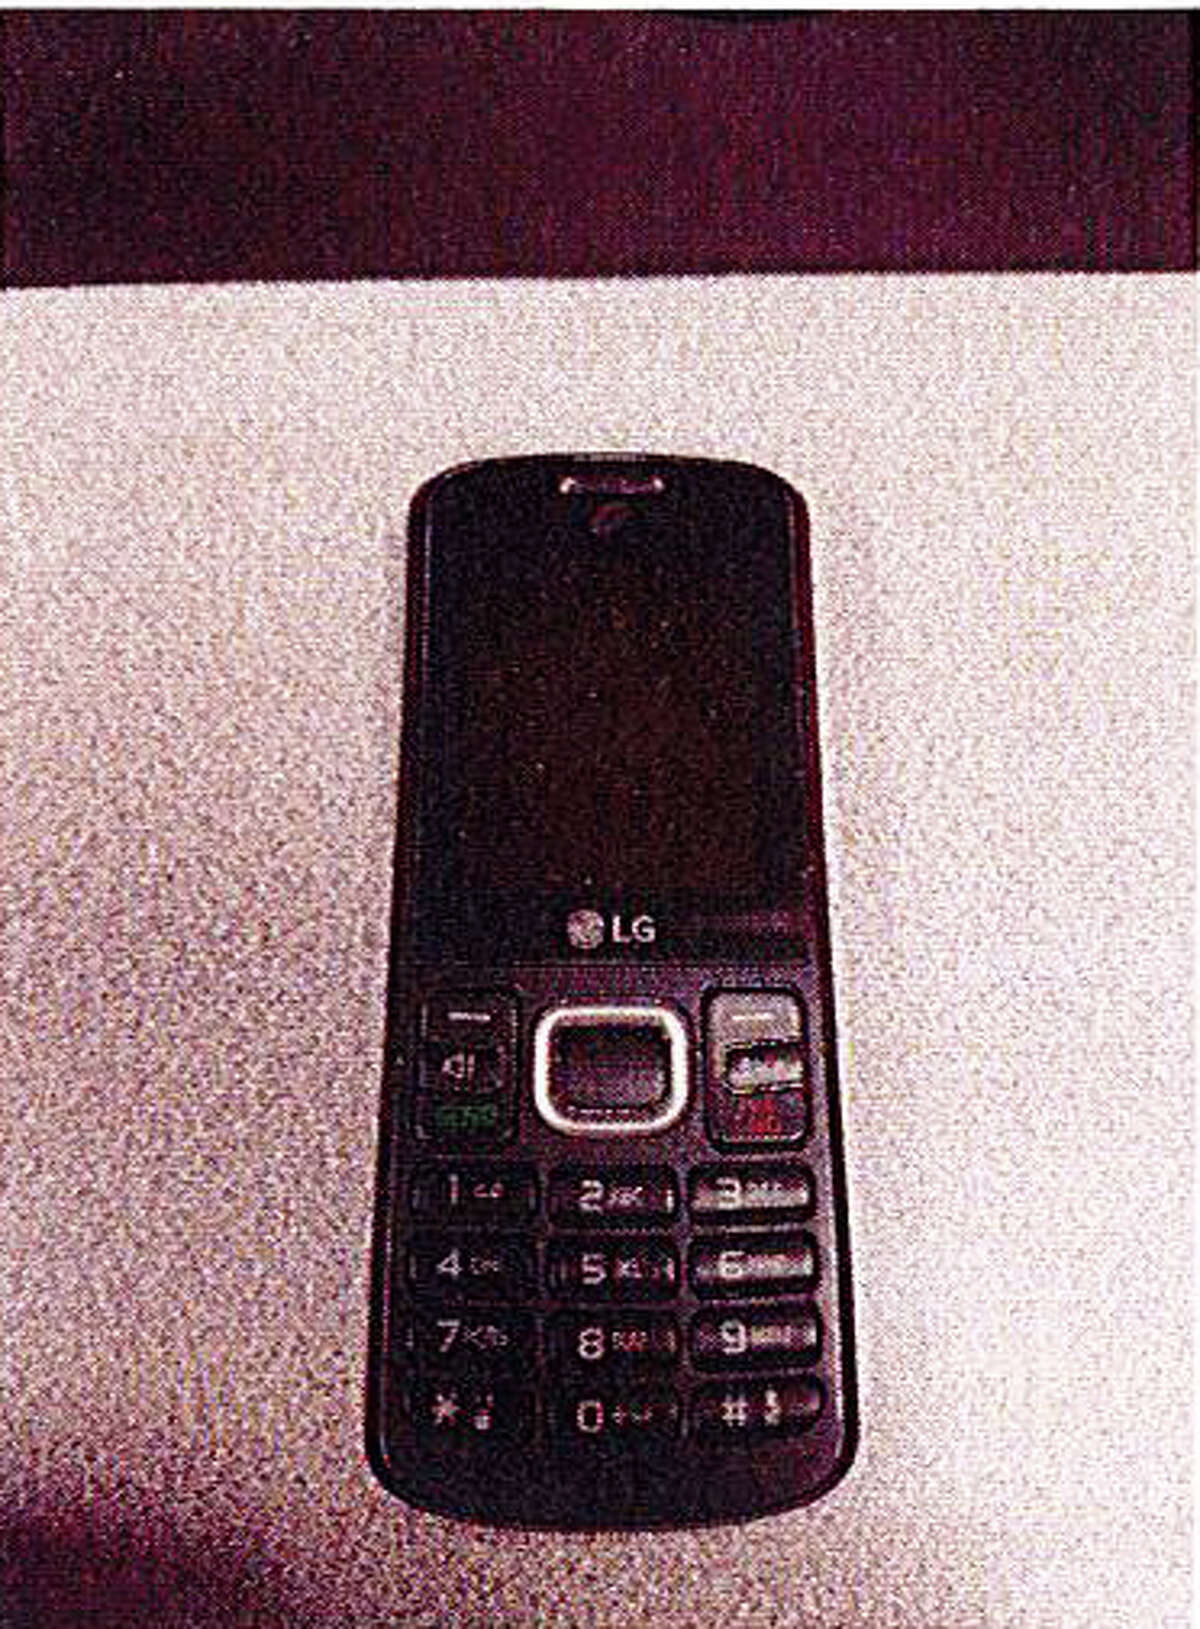 A photo of Devin Patrick Kelley's second cell phone found with him when law enforcement searched his vehicle.